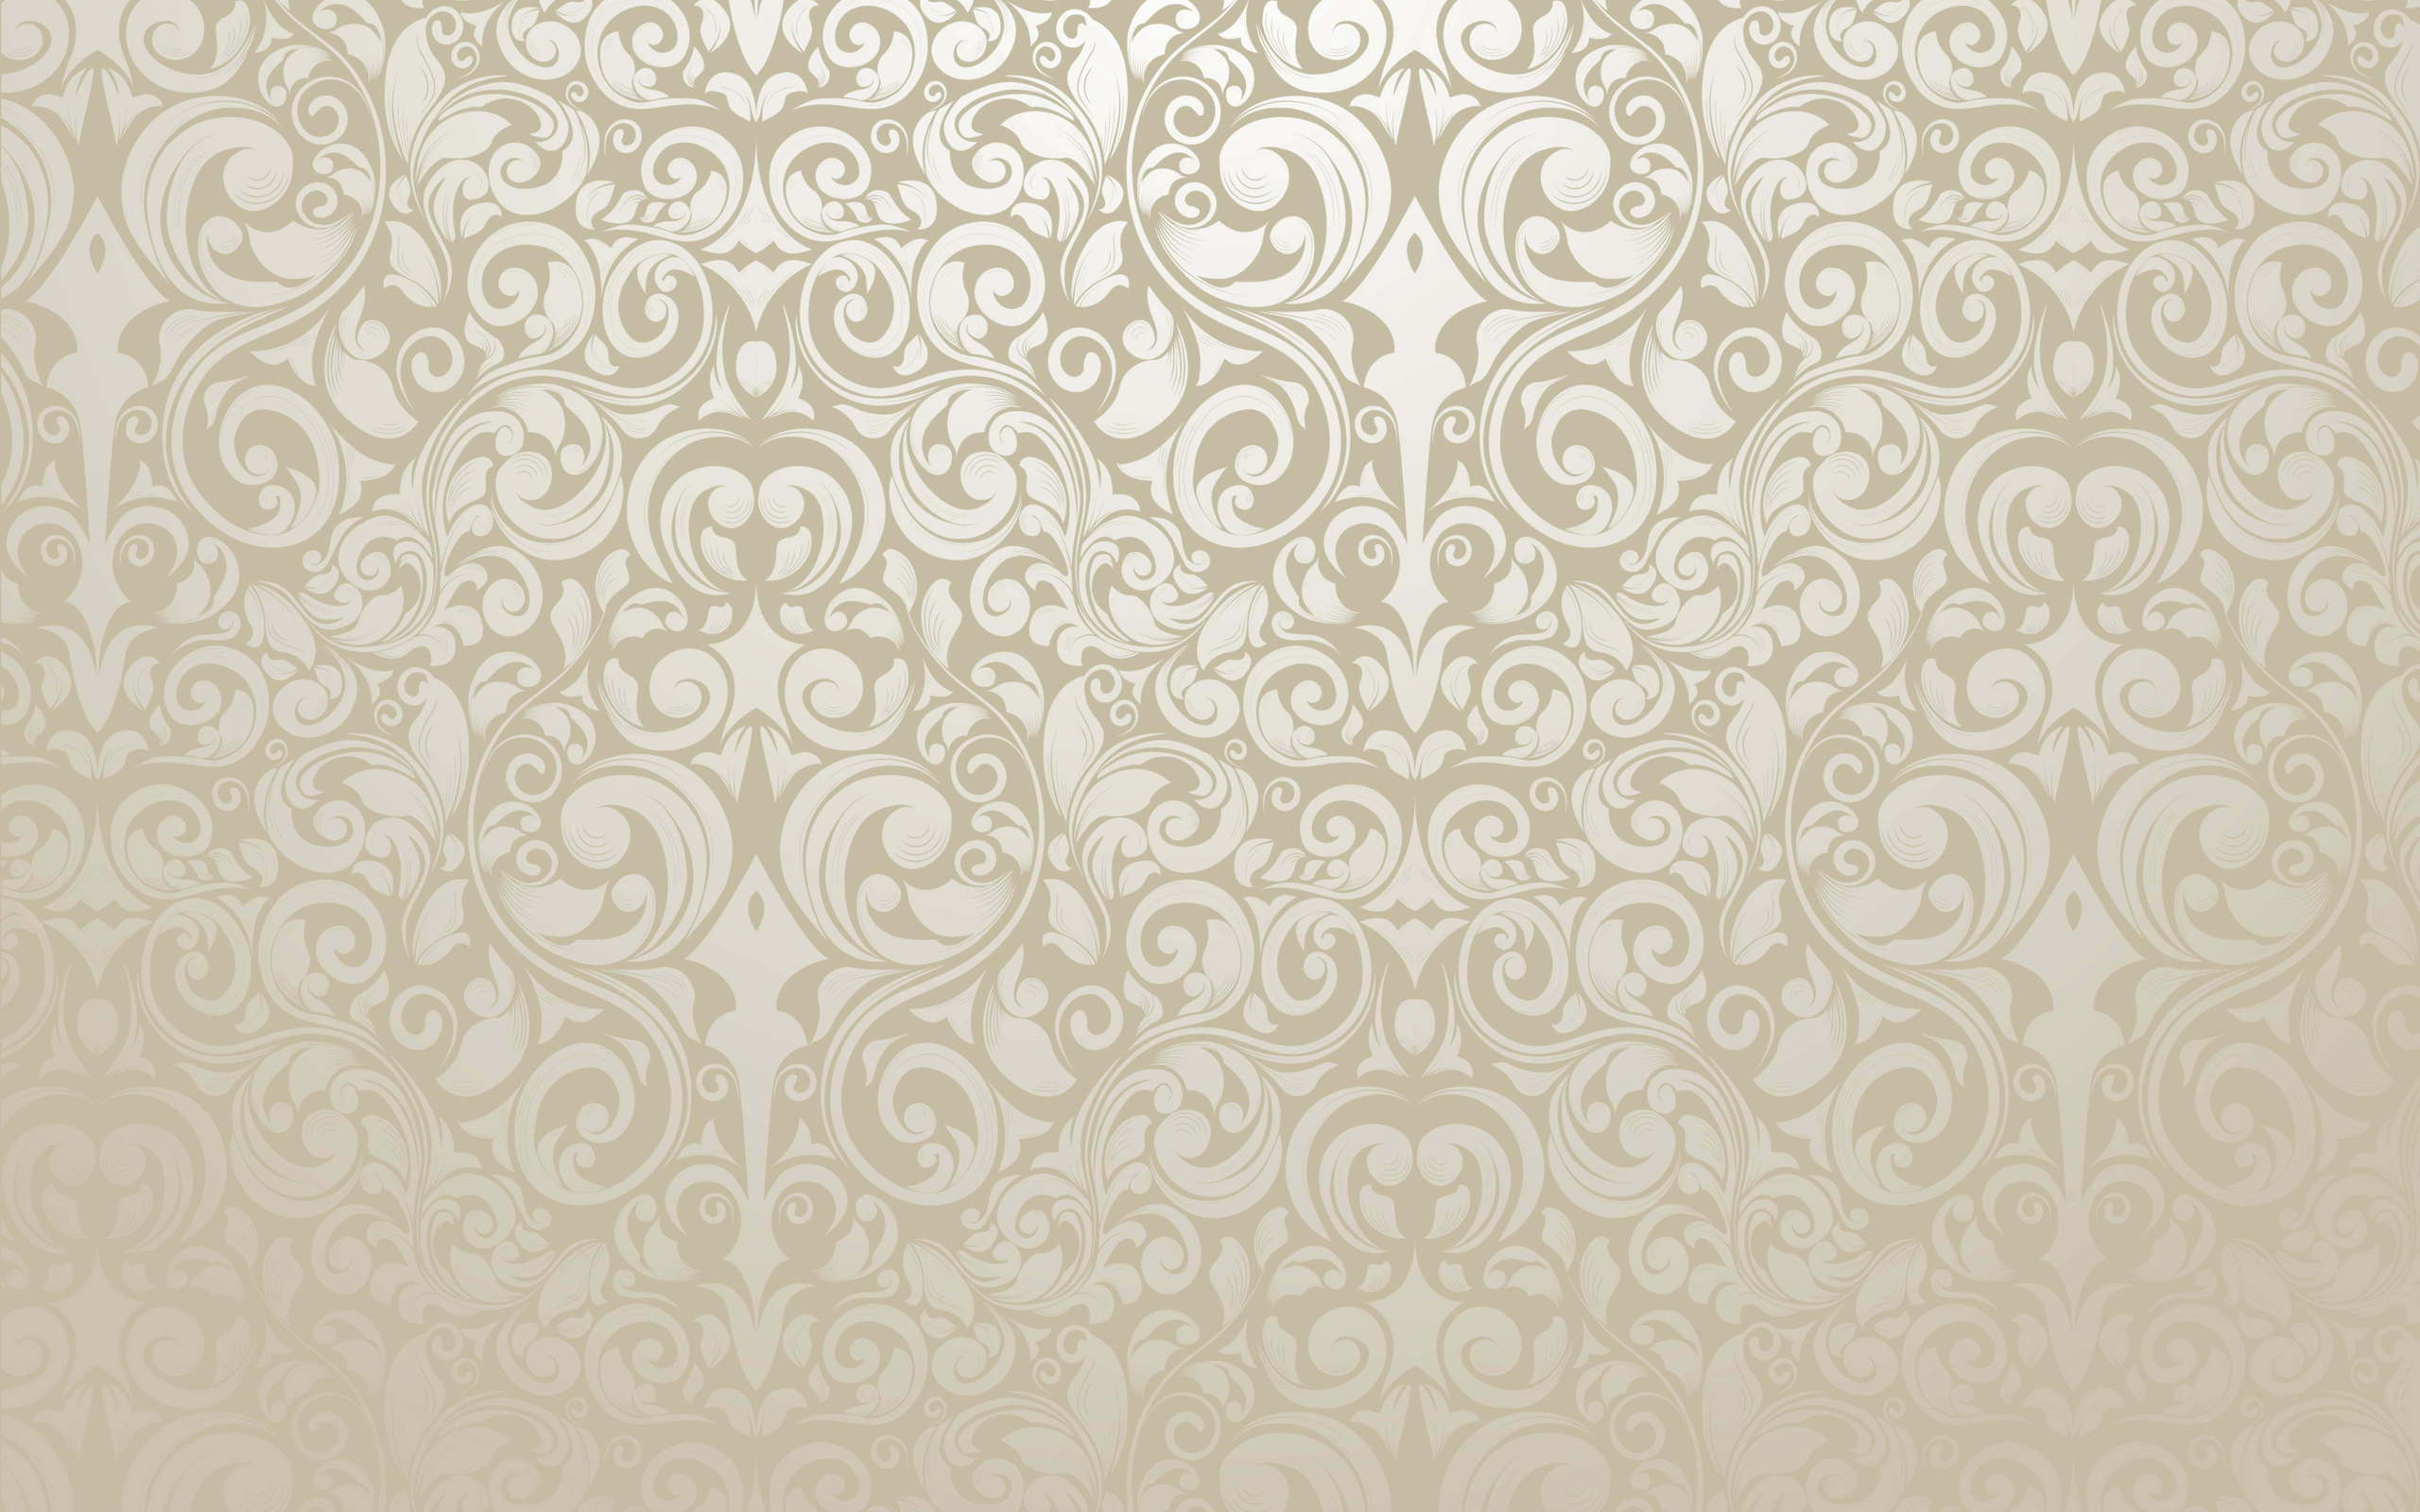 Pattern HD Wallpaper In Gold Color For Card Design Wallpapers 2560x1600